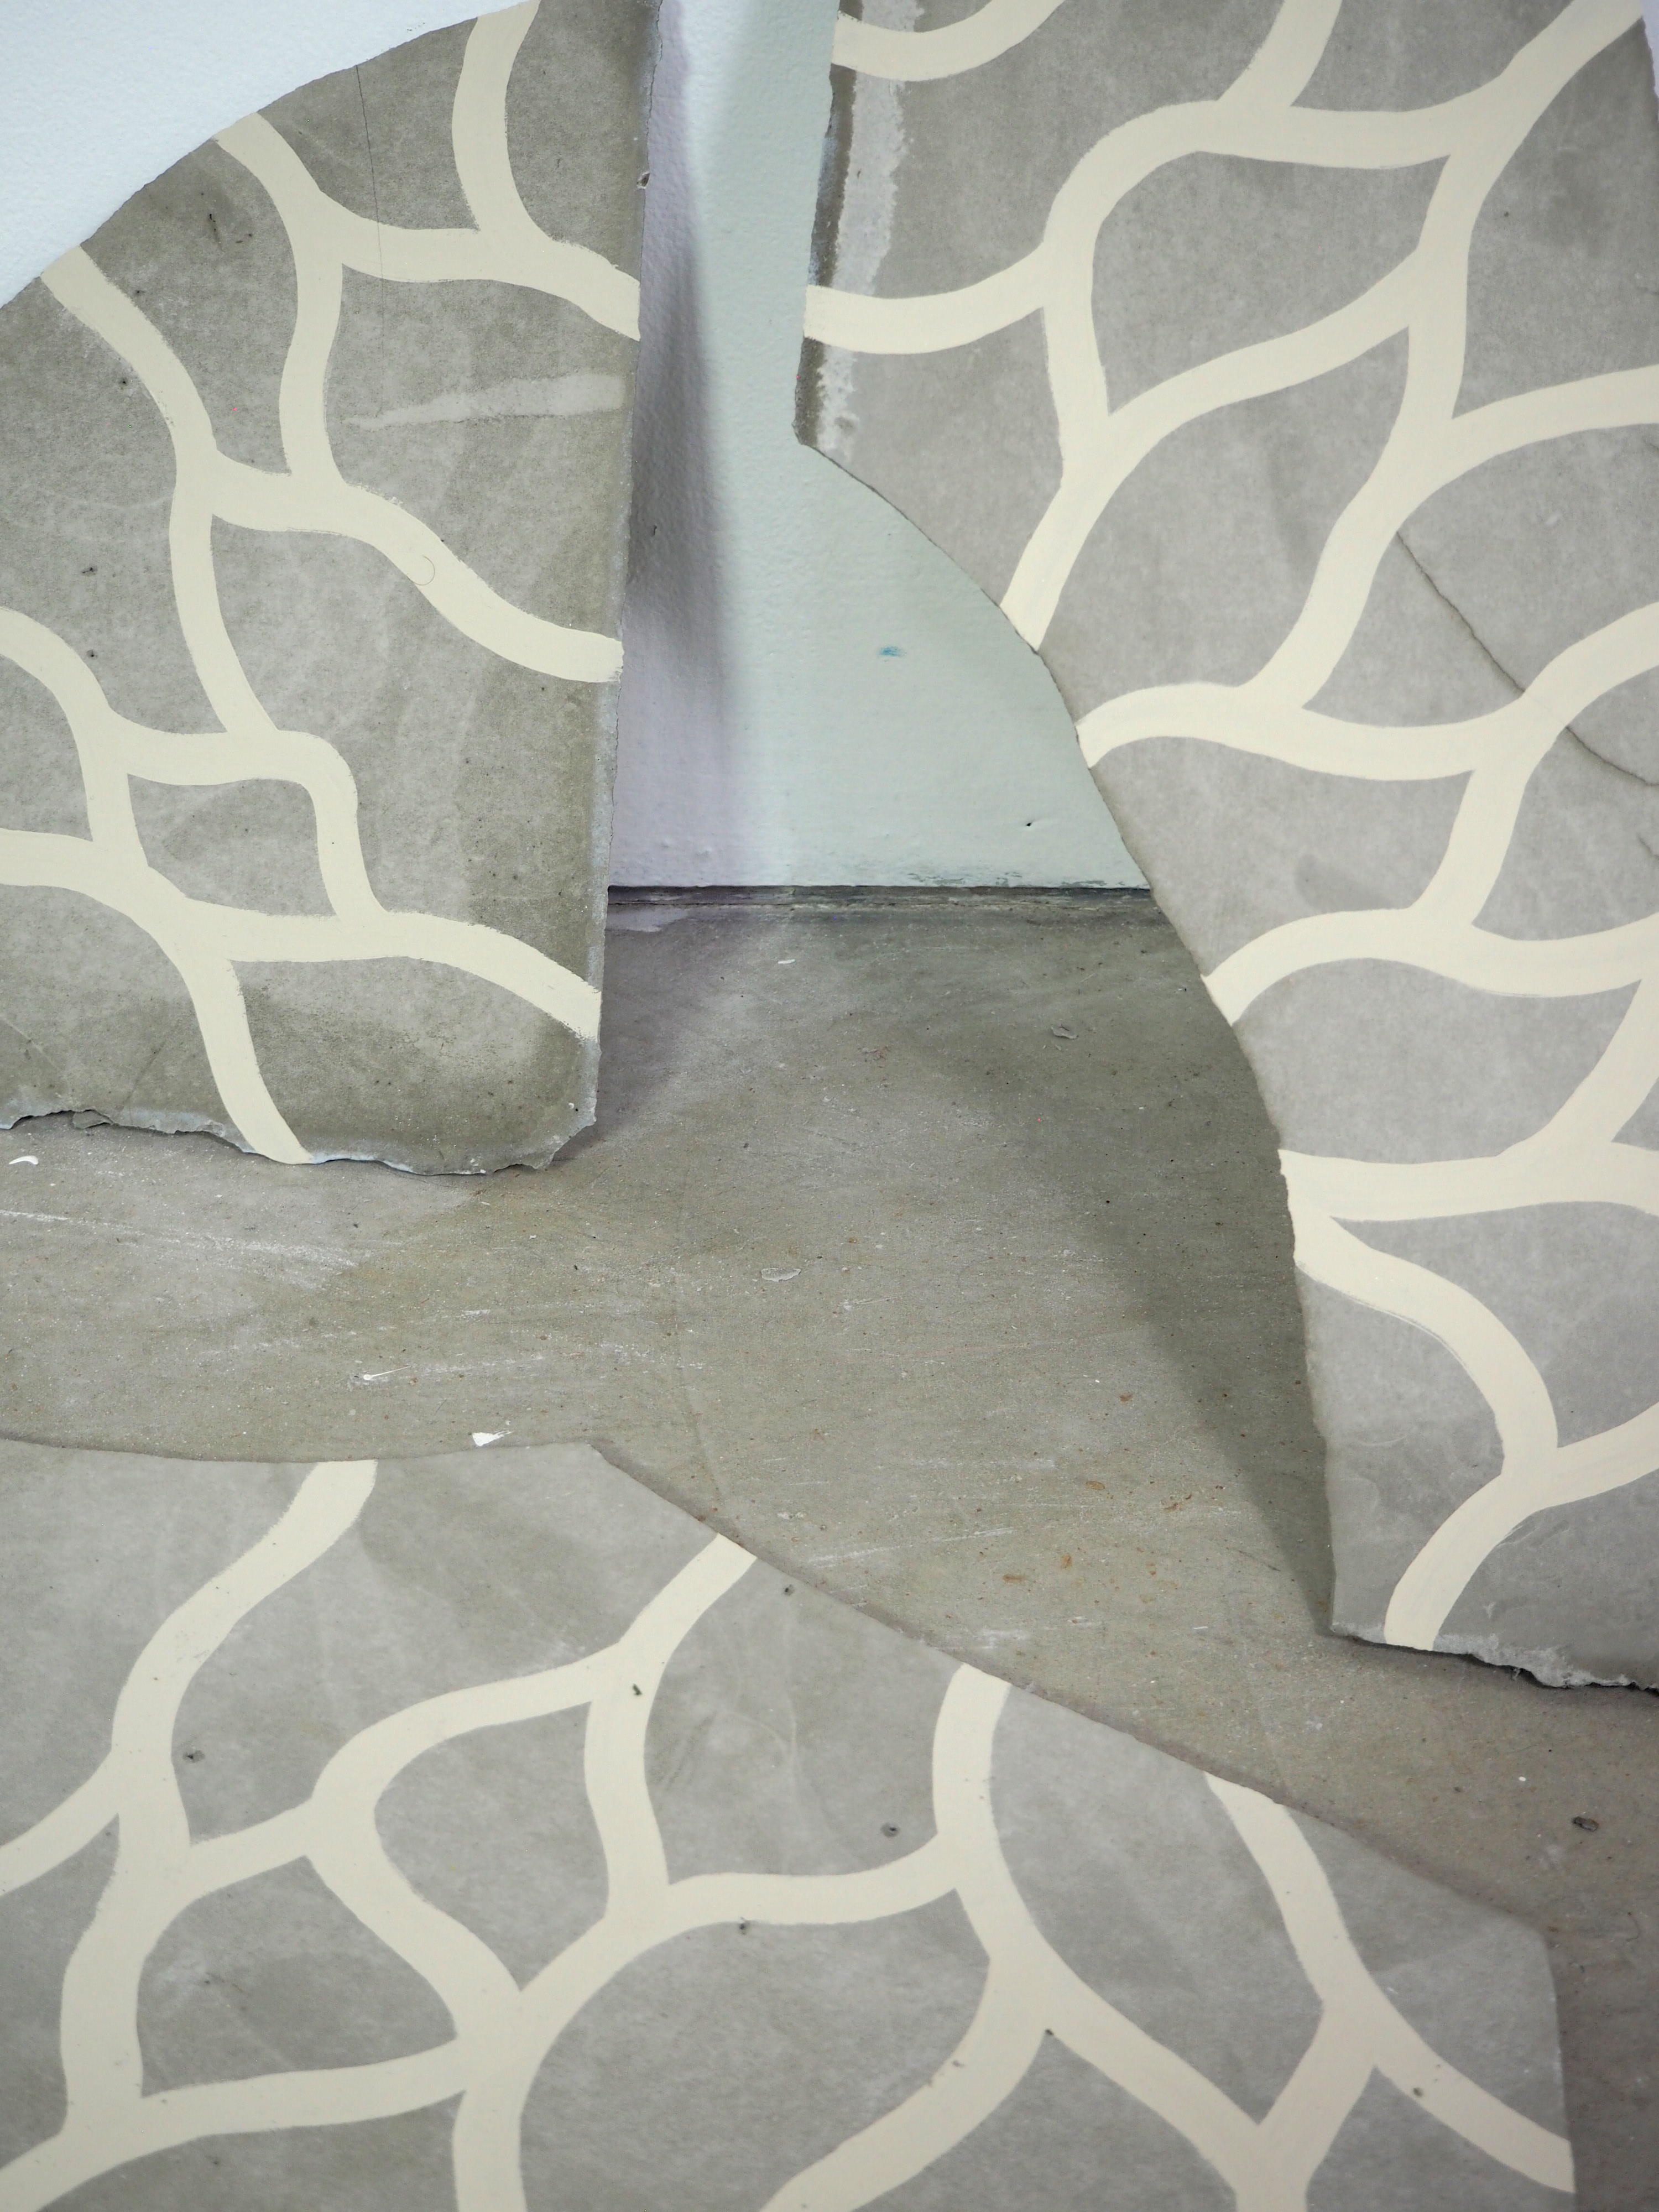 close up image of pattern on concrete